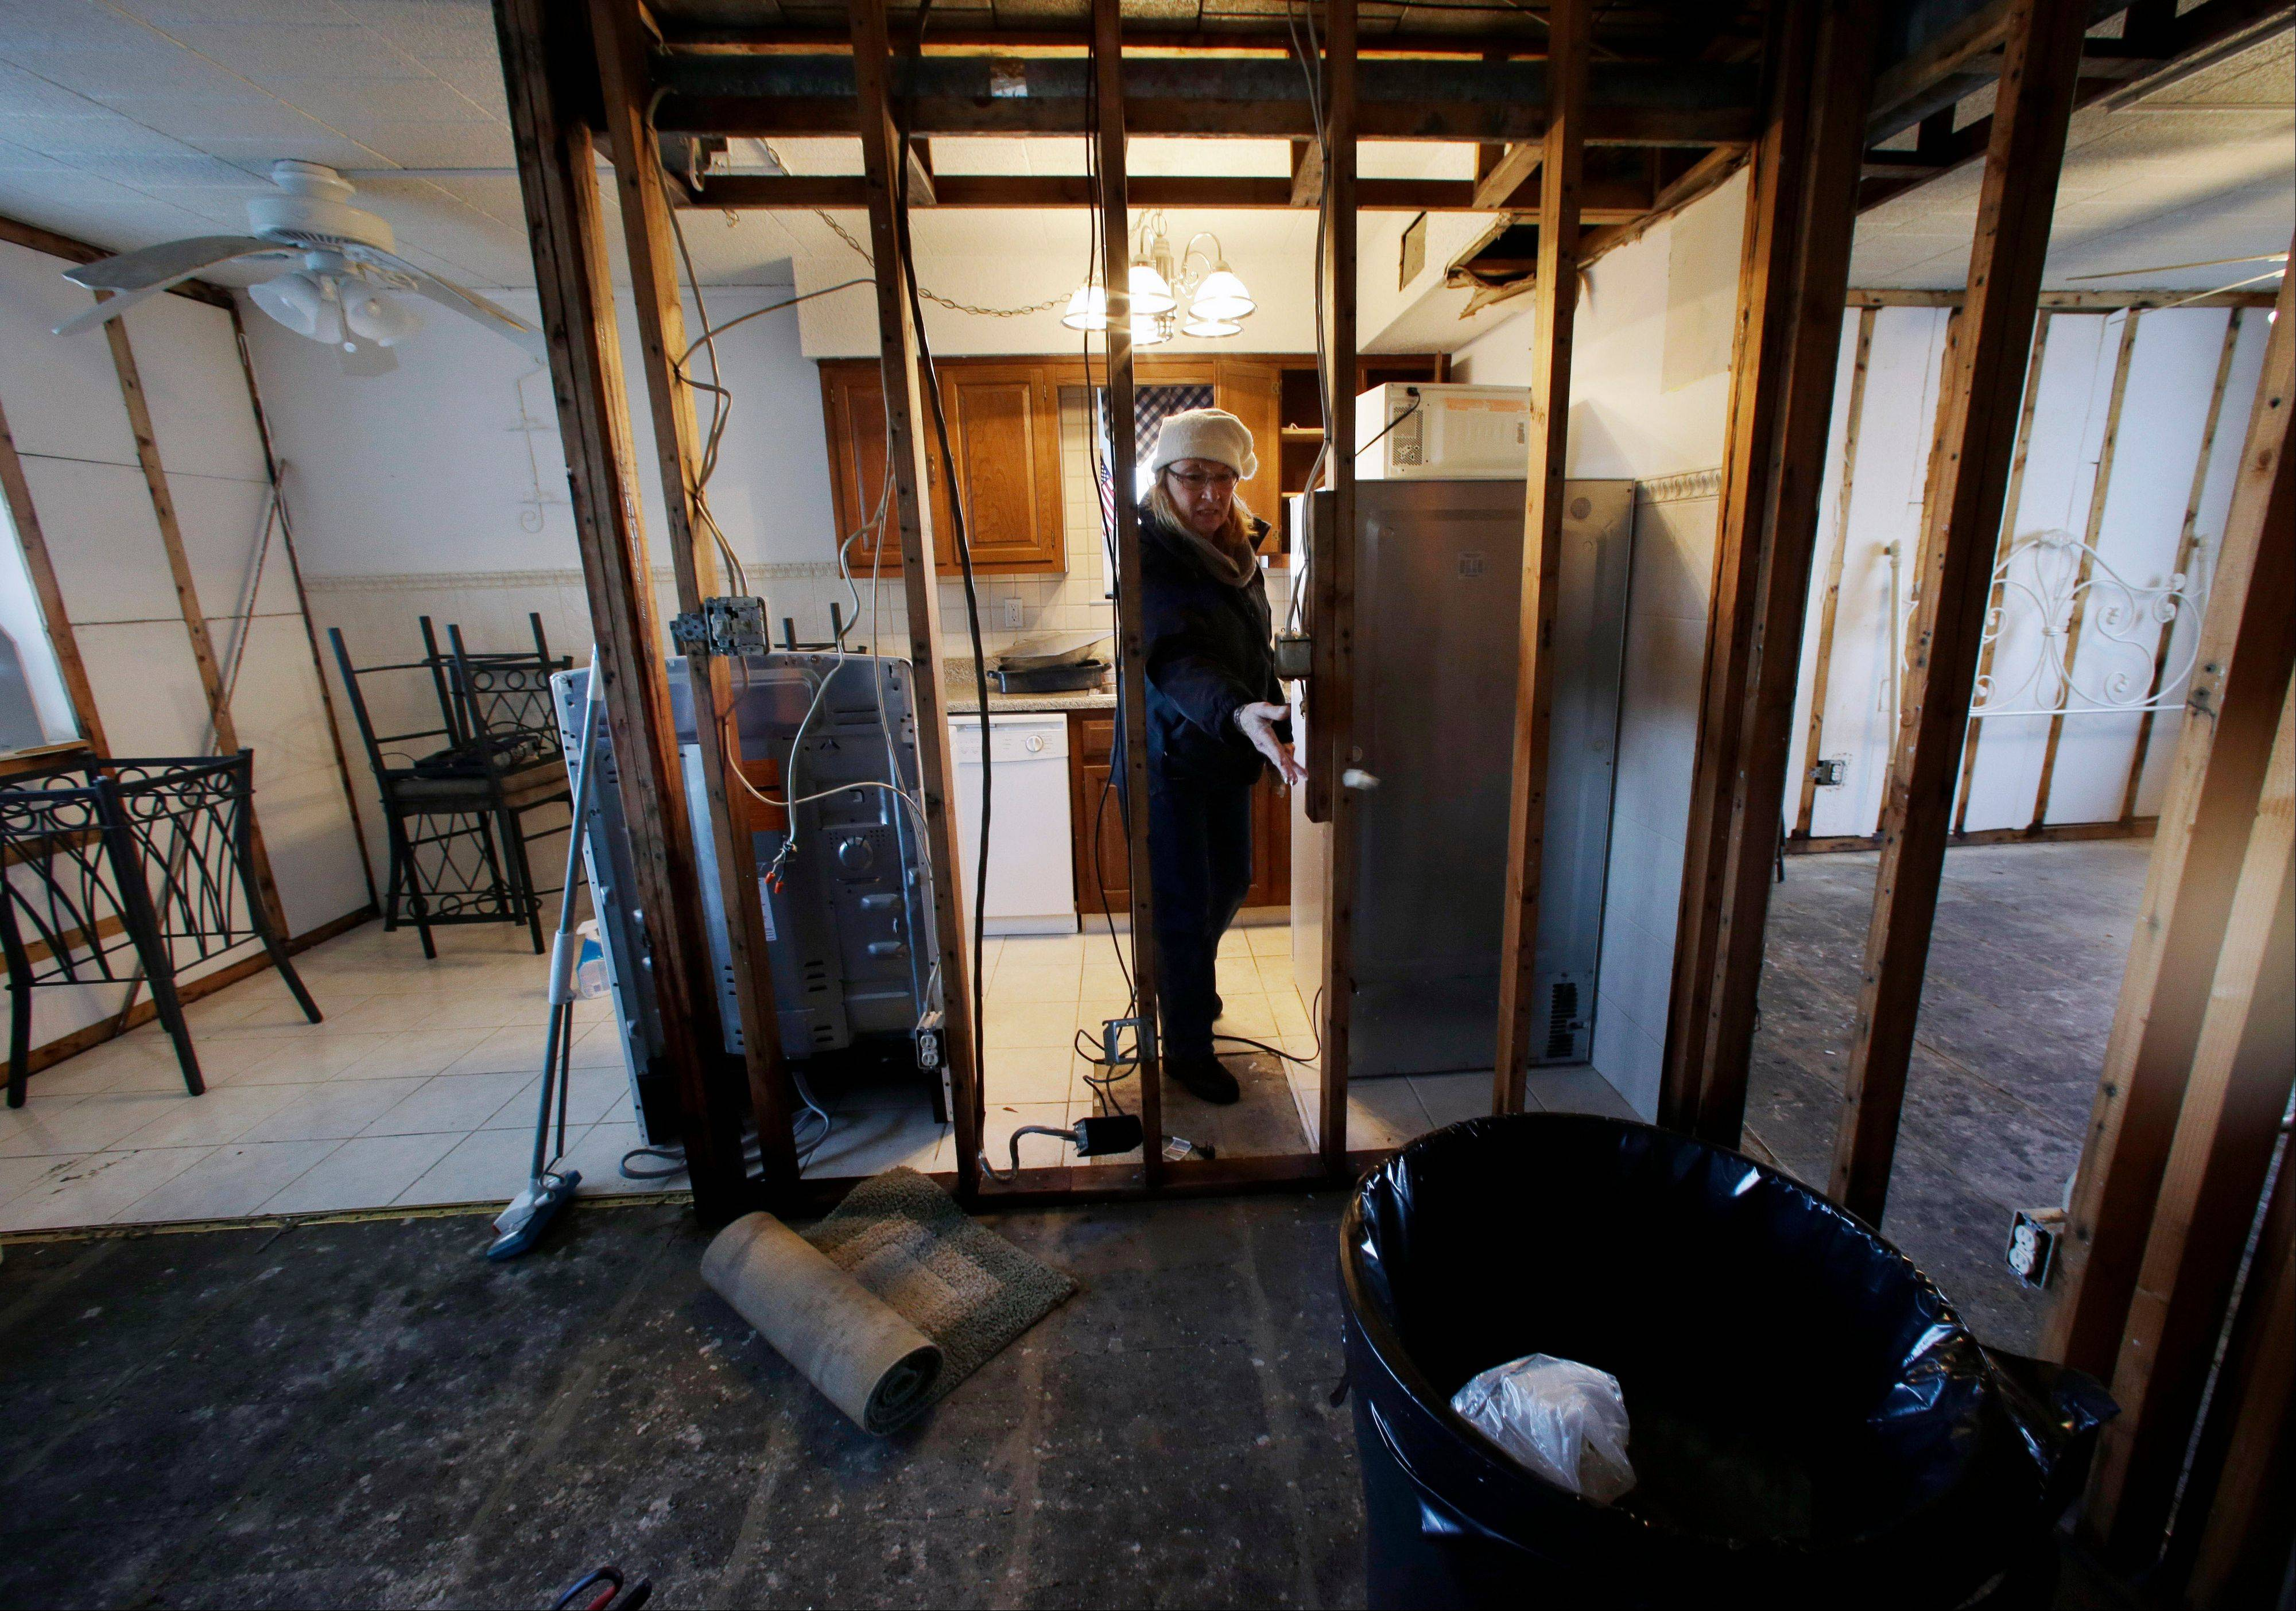 Kim Baker works to clean up her Superstorm Sandy-damaged home in Seaside Heights, N.J.